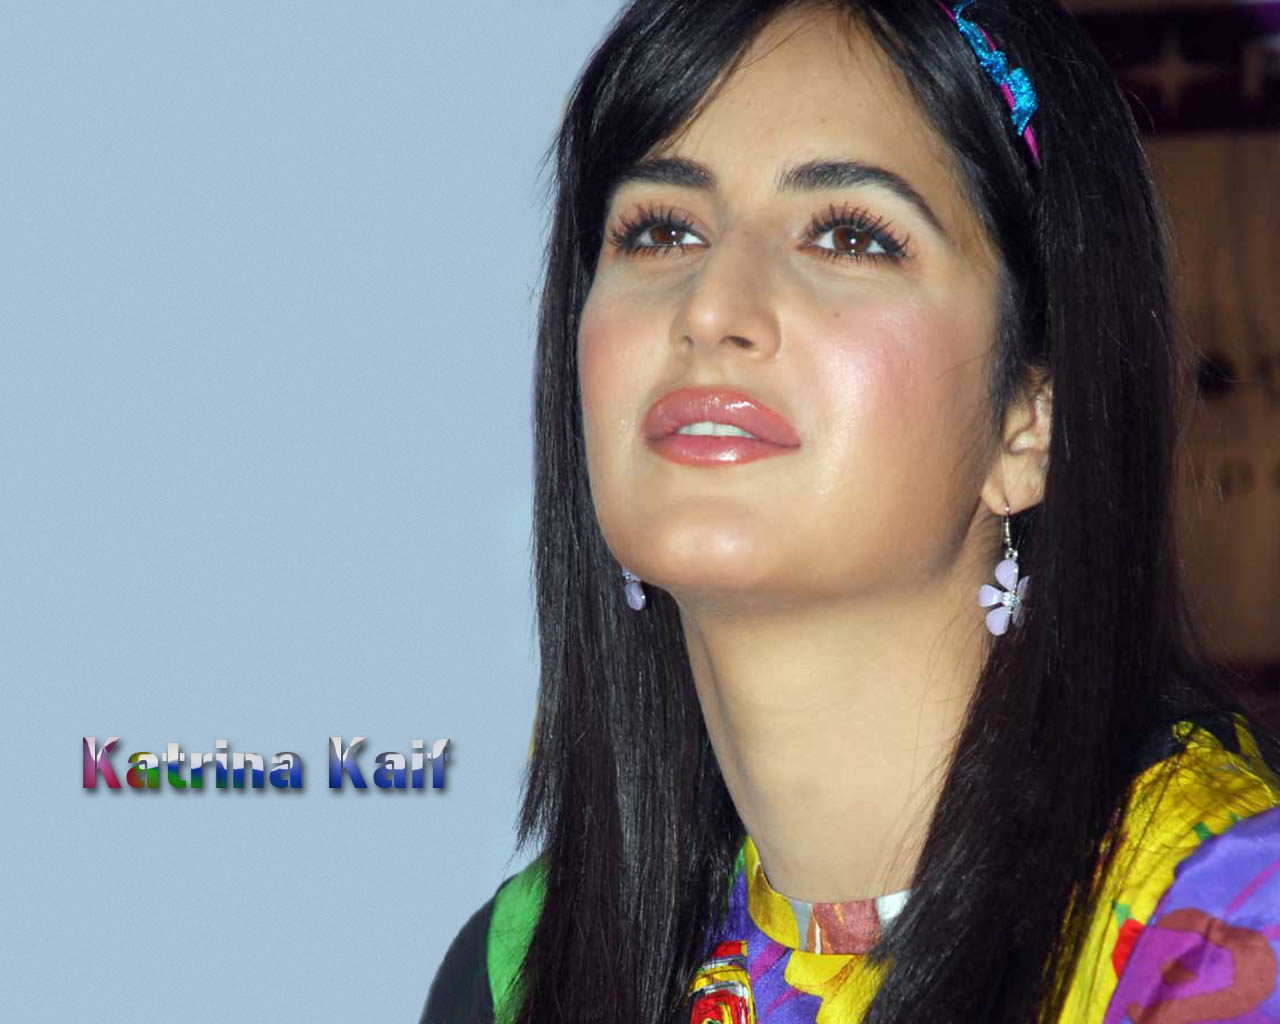 Katrina kaif Wallpaper 12 With 1280 x 1024 Resolution ( 140kB )